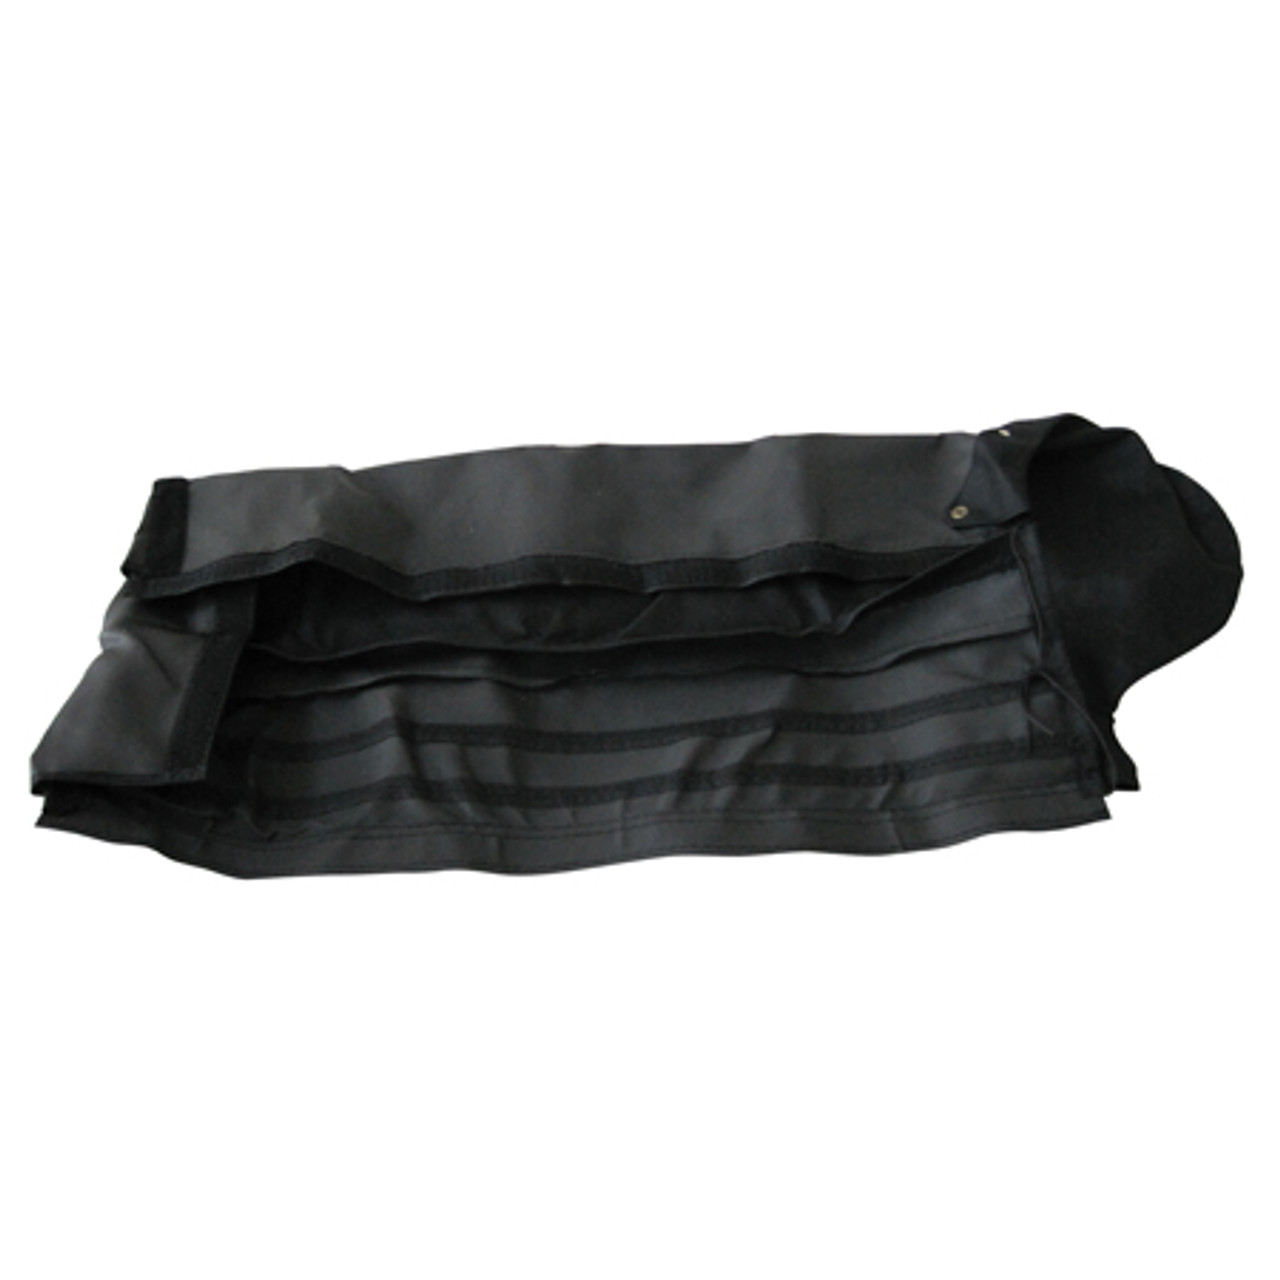 TrailMaster Mid XRX Fabric Canopy Top